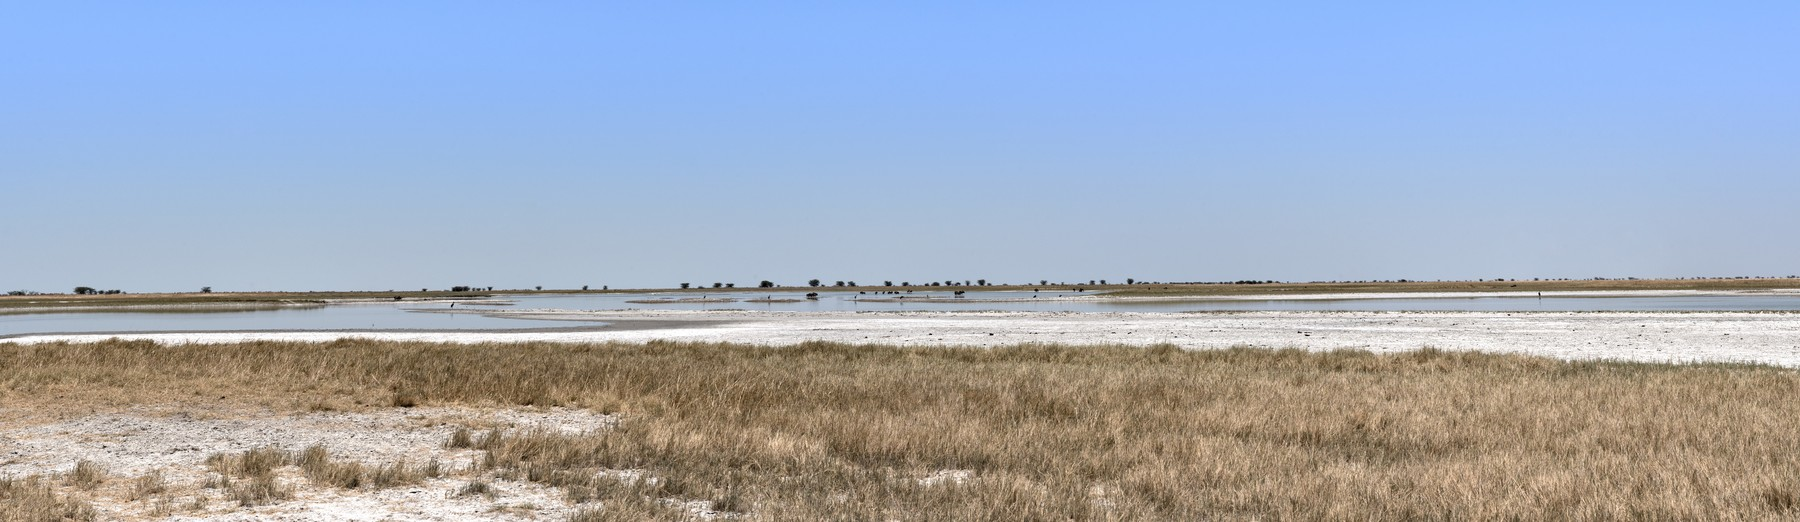 Panoramic of the Nwetwe, Makgadikgadi Pan in Botswana, Image: 409818599, License: Royalty-free, Restrictions: , Model Release: no, Credit line: Rainer Lesniewski / Panthermedia / Profimedia